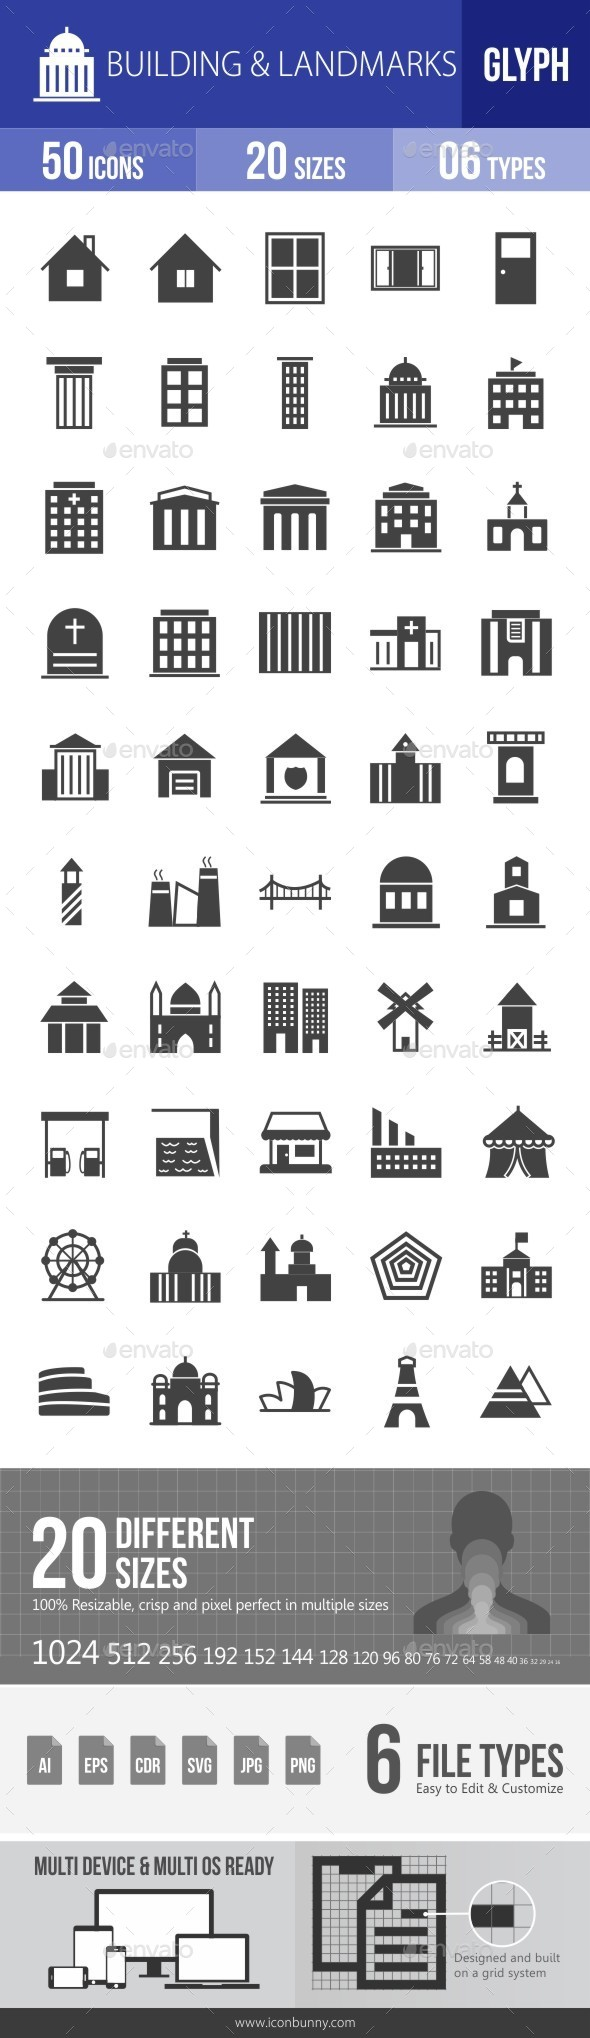 Buildings & Landmarks Glyph Icons - Icons